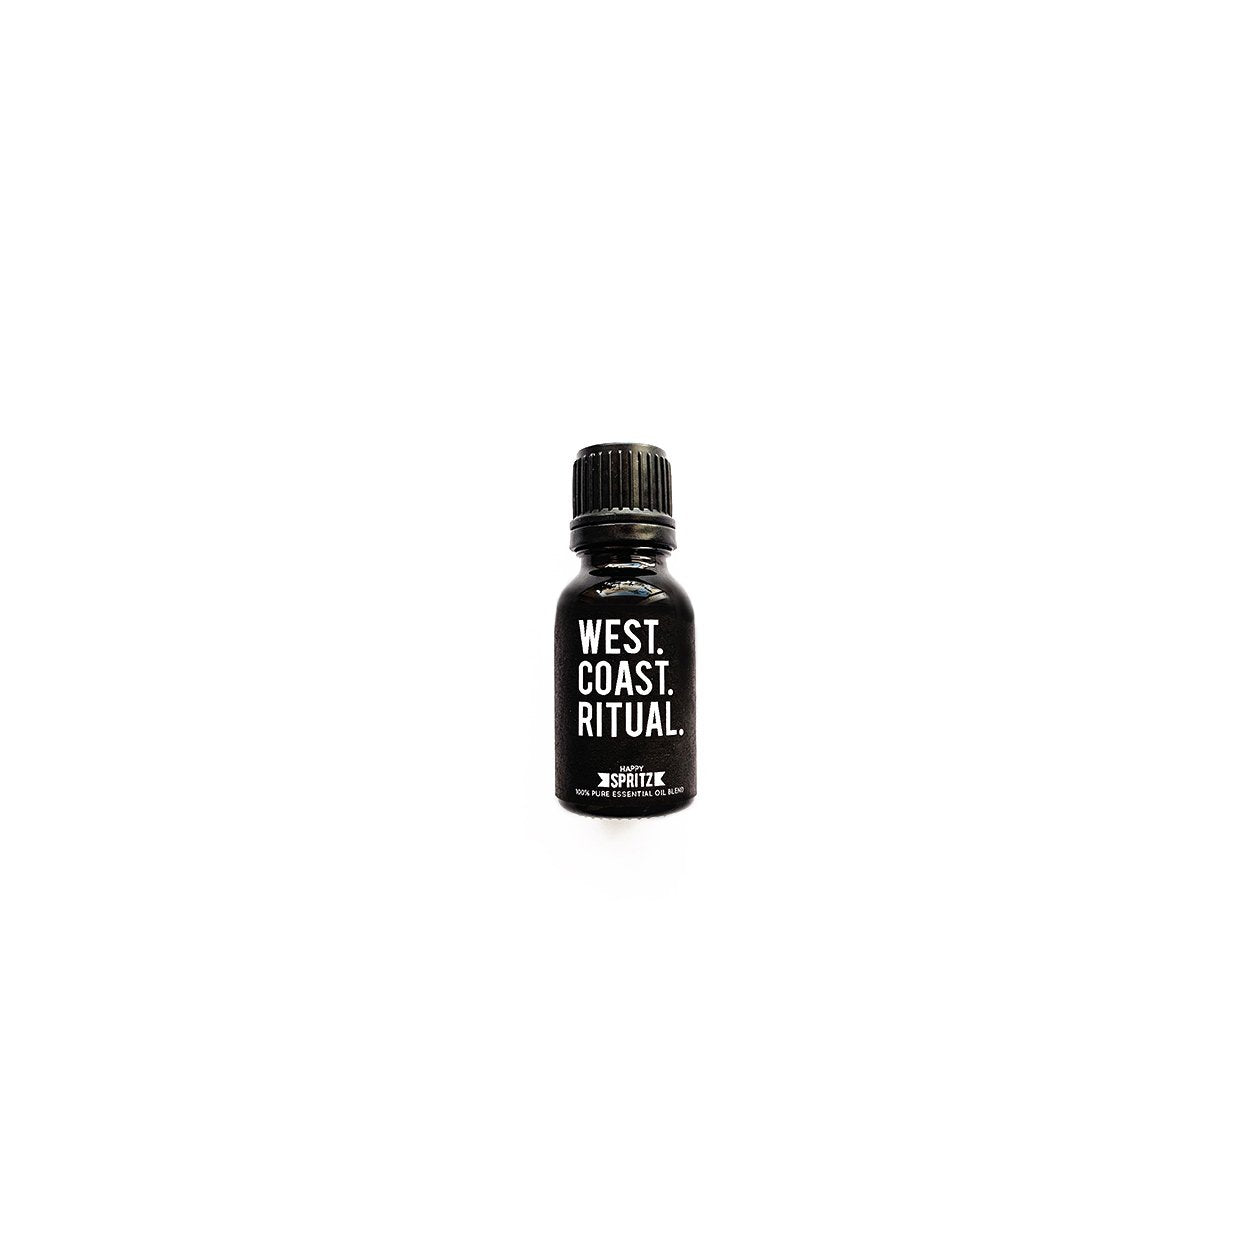 West Coast Ritual Pure Essential Oil Blend